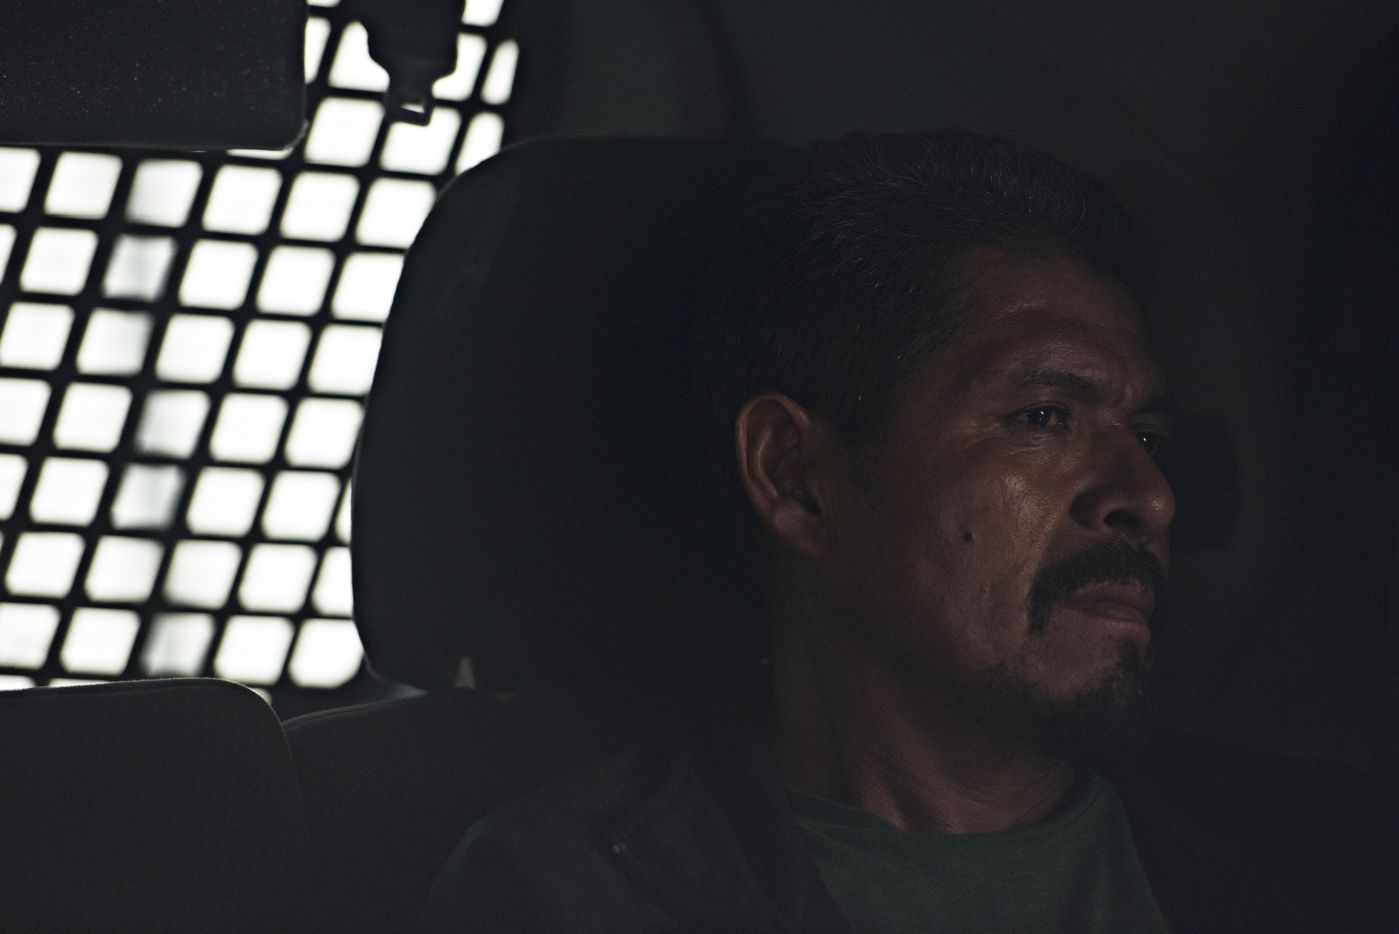 Anselmo Morán Lucero, an undocumented immigrant who has been in the U.S. for 30 years, in an Immigration and Customs Enforcement vehicle after being arrested in Riverside, Calif., June 22, 2017.